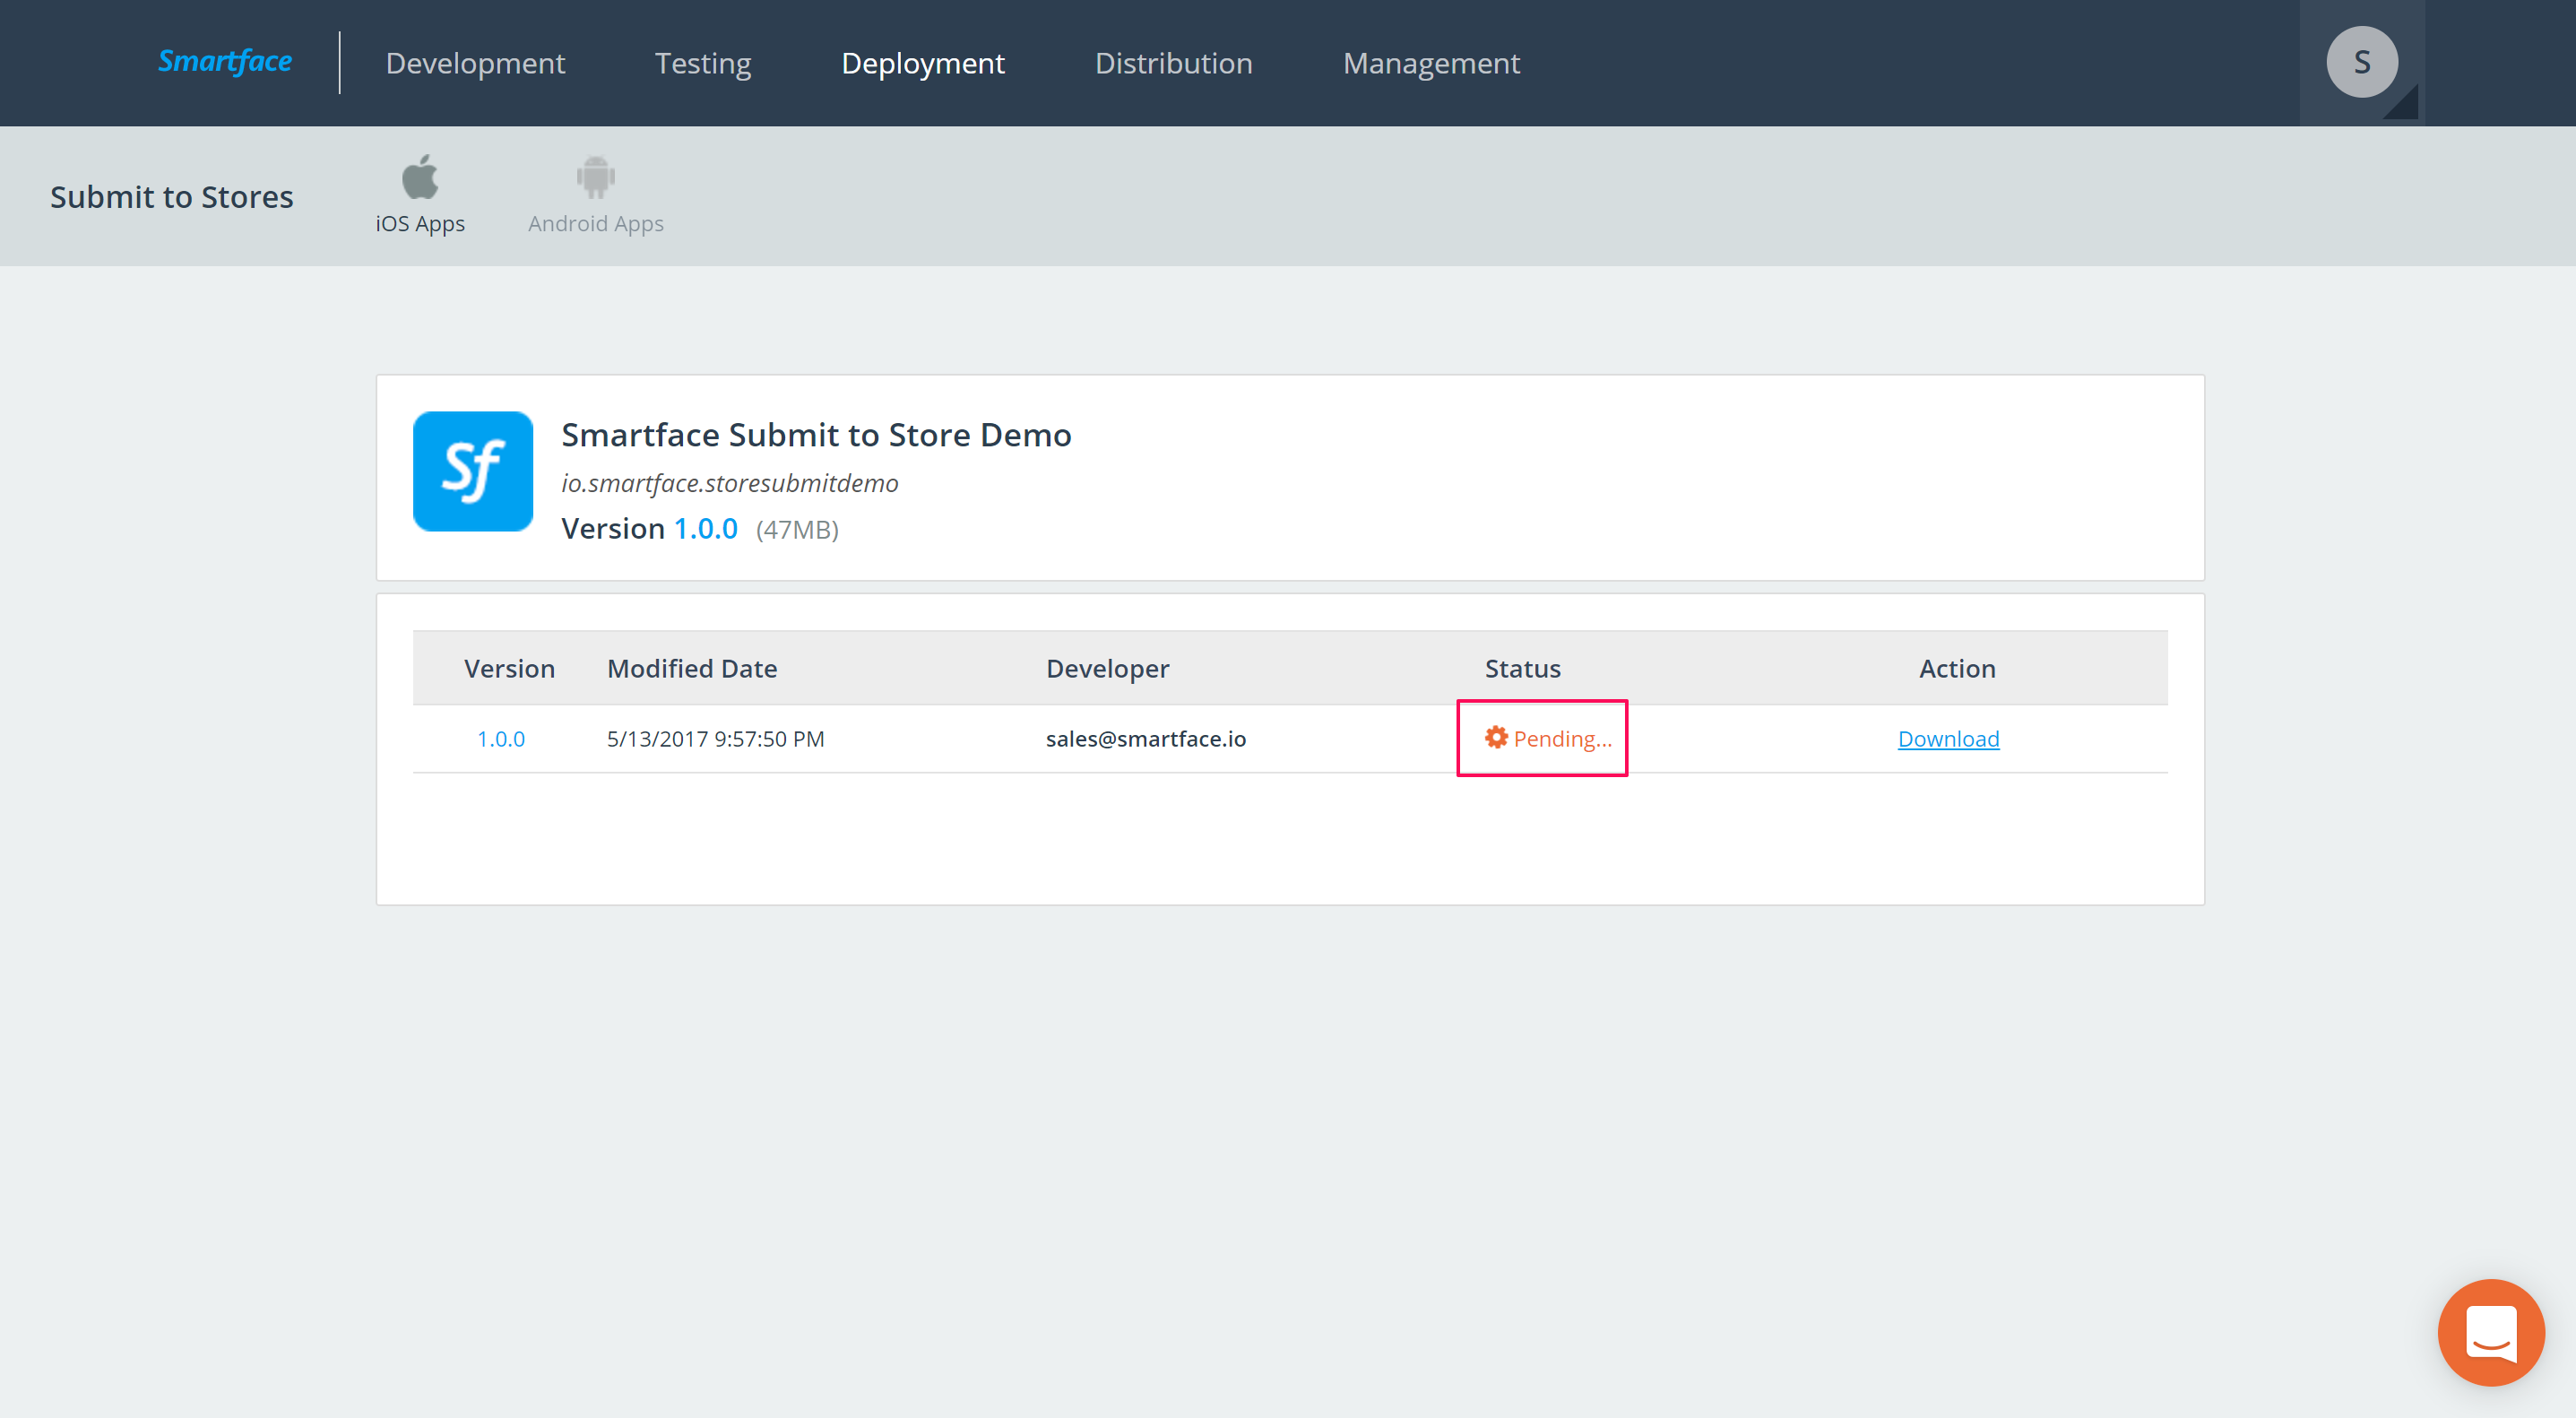 iTunes Store: Managing and Uploading Binaries for Store